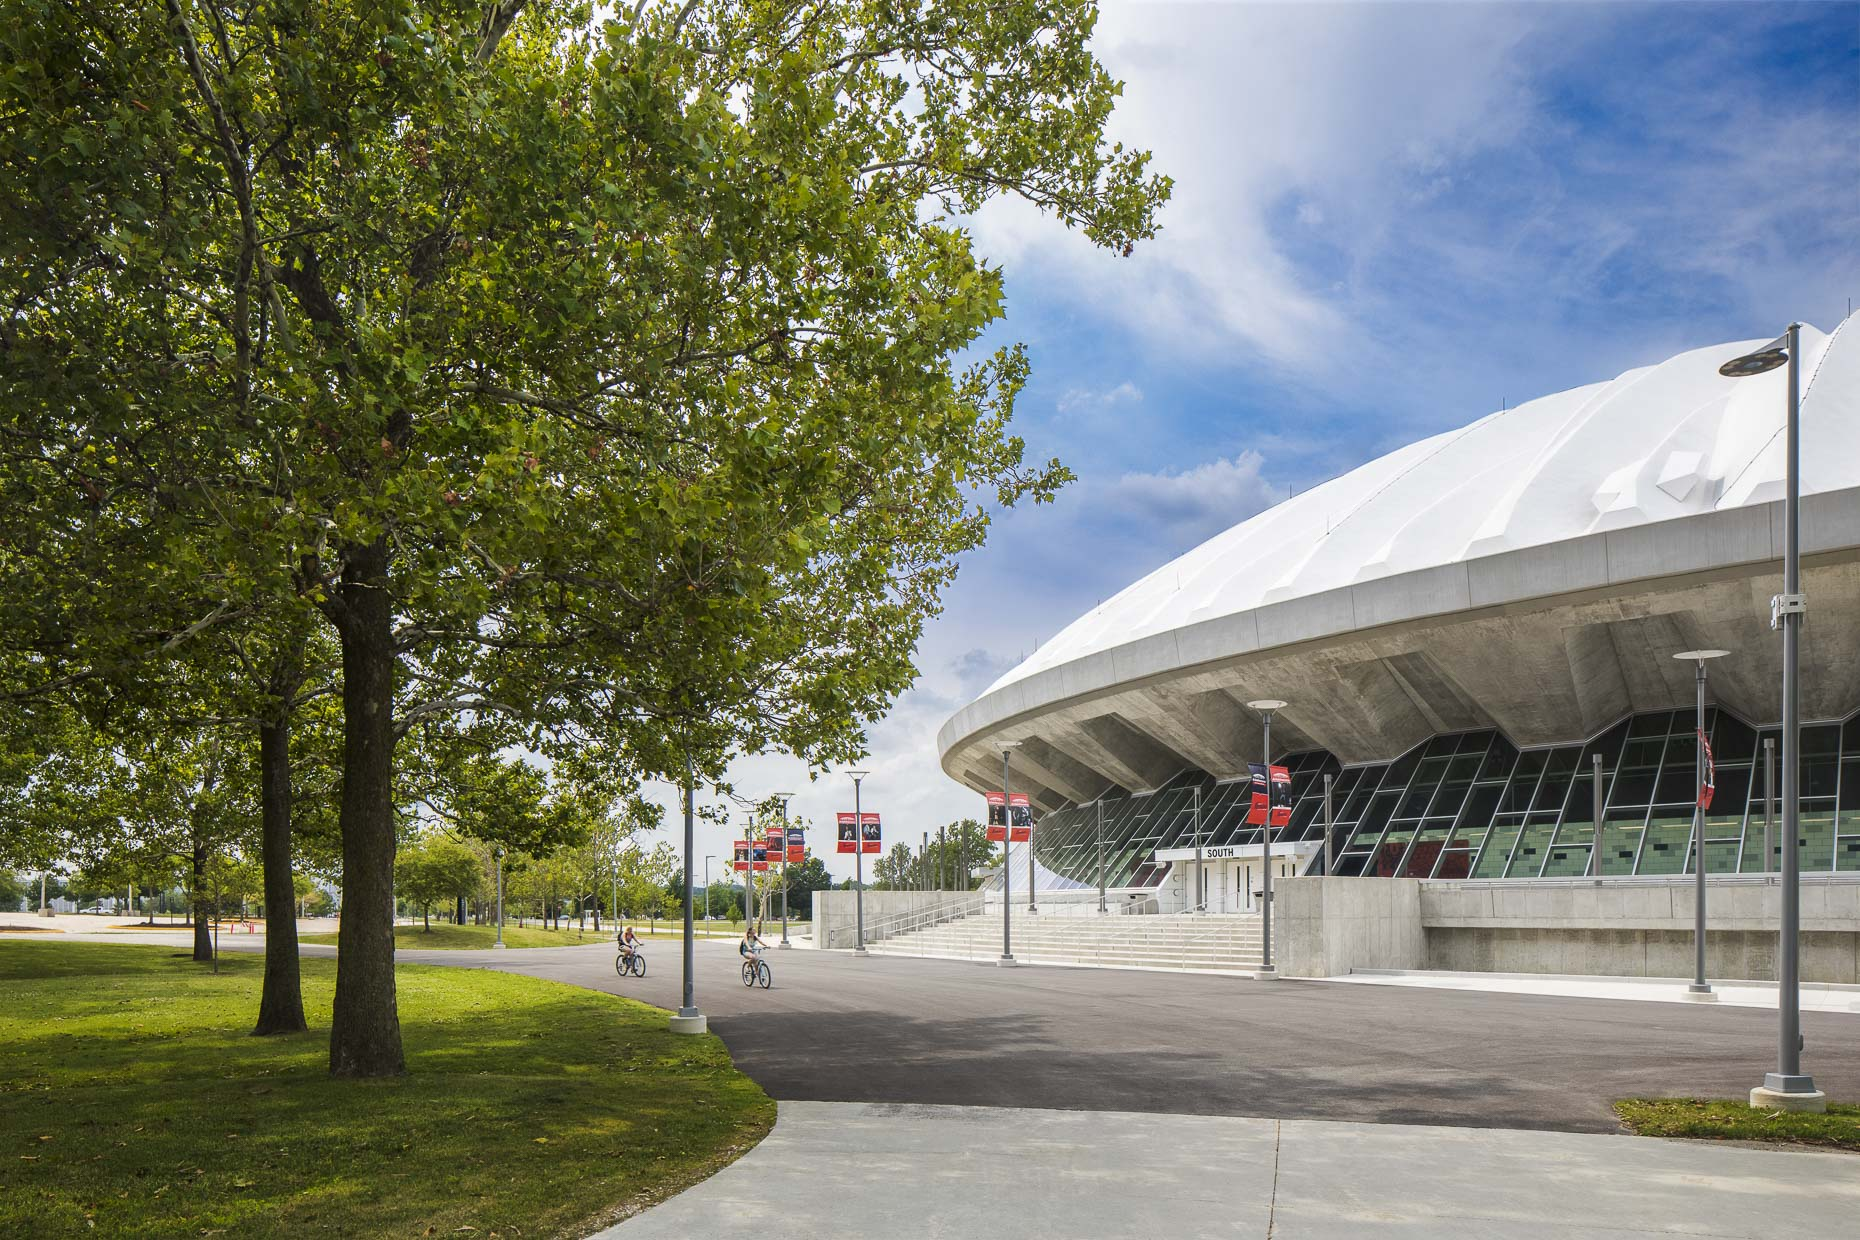 University of Illinois State Farm Center by AECOM photographed by Brad Feinknopf based in Columbus, Ohio